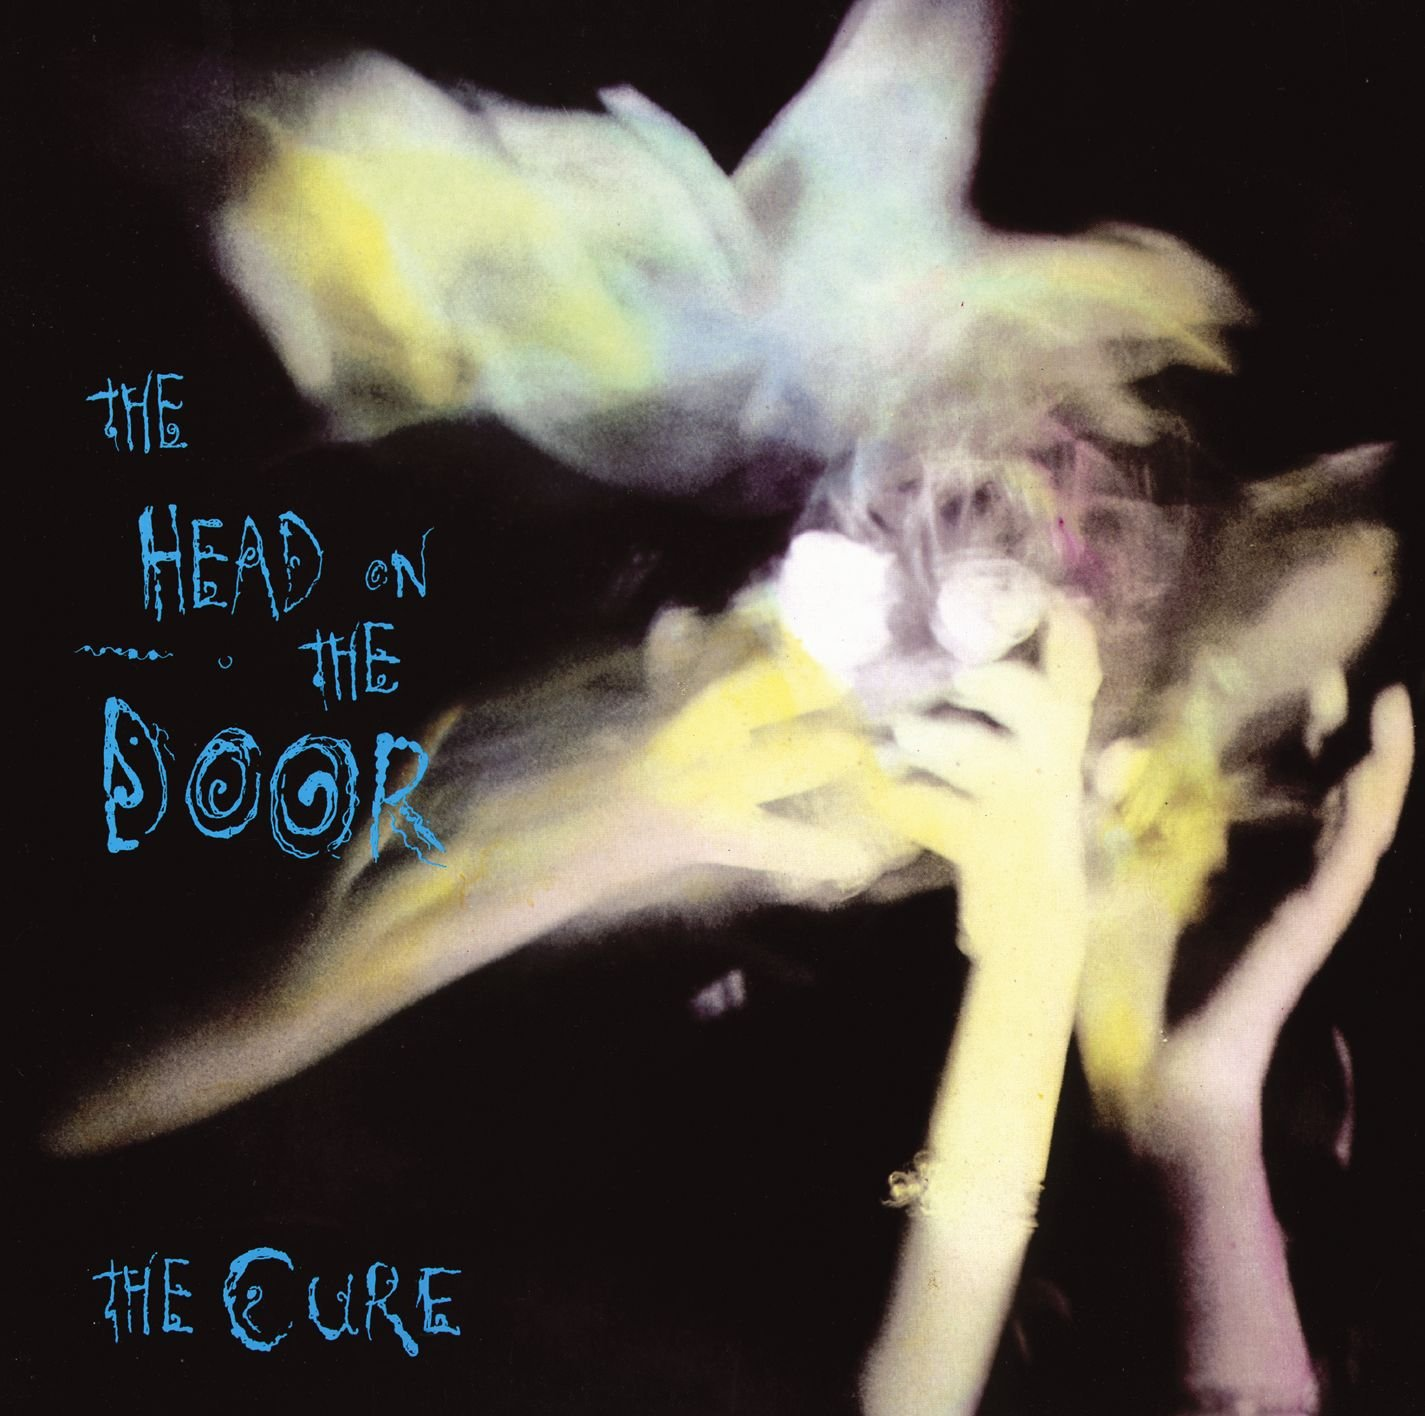 & The Cure - Head On The Door (re-issue) - Amazon.com Music Pezcame.Com